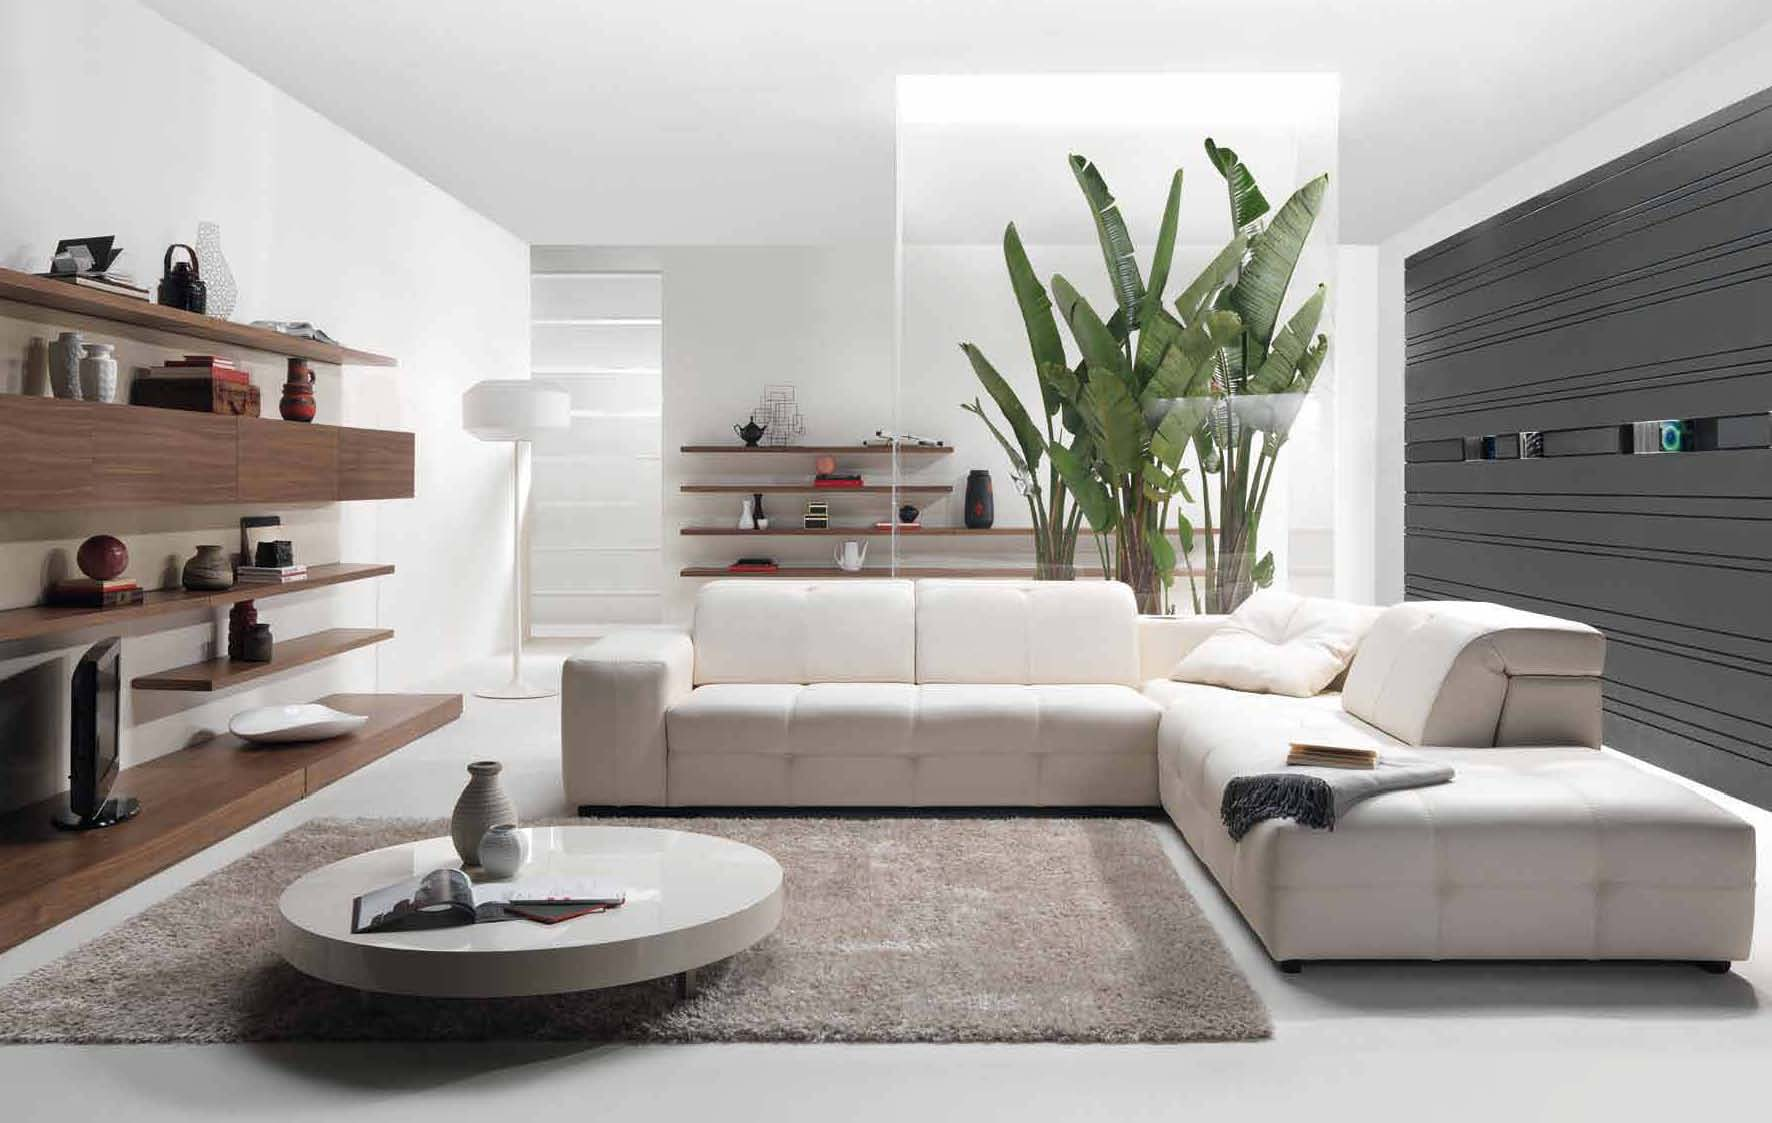 Modern Minimalist Style Living Room Decorating With Shaggy